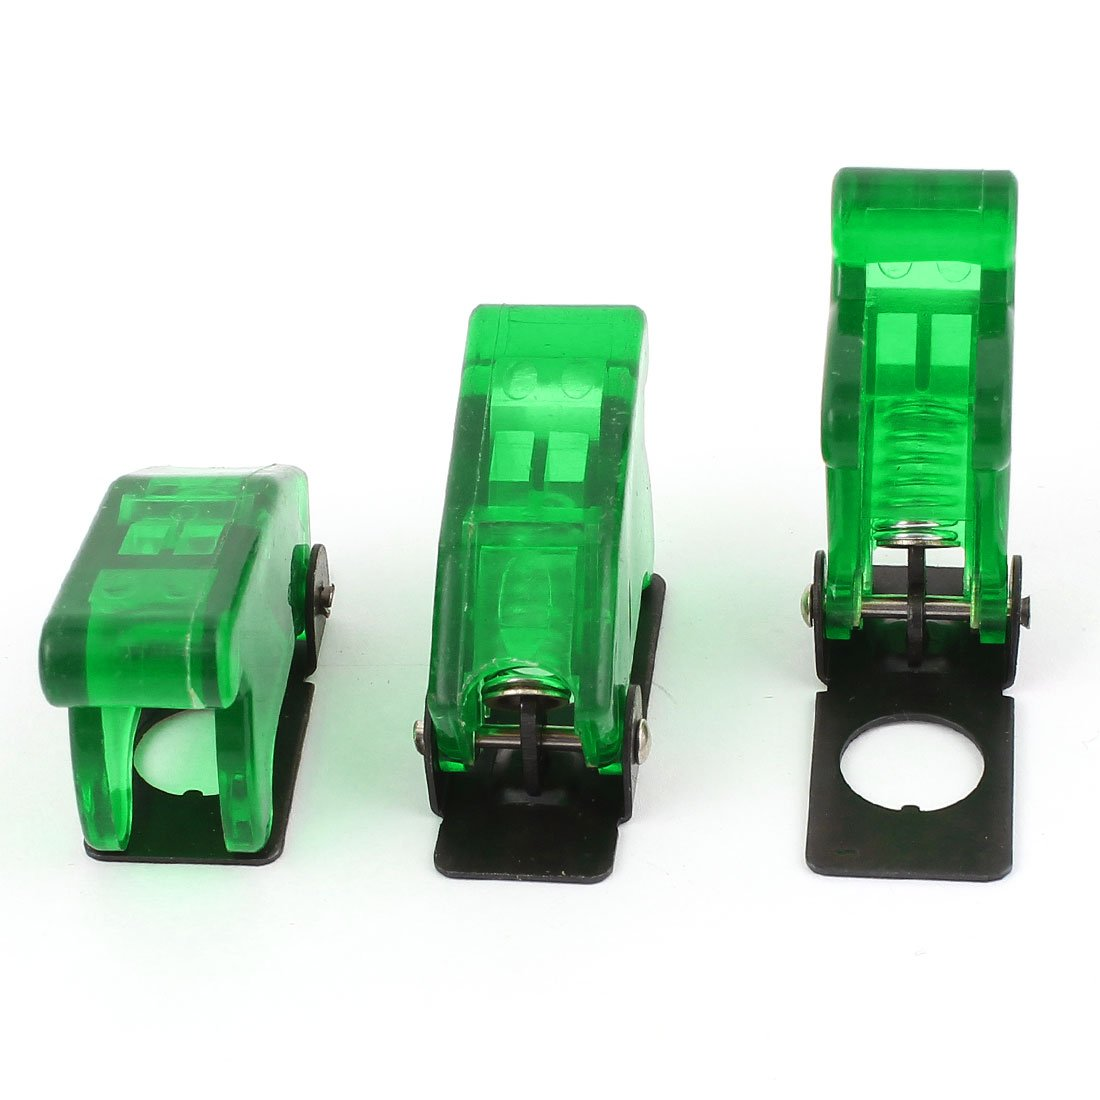 3 Pcs Waterproof Toggle Switch Flip Safety Cover Protection Cap 12mm uxcell a15011200ux0477